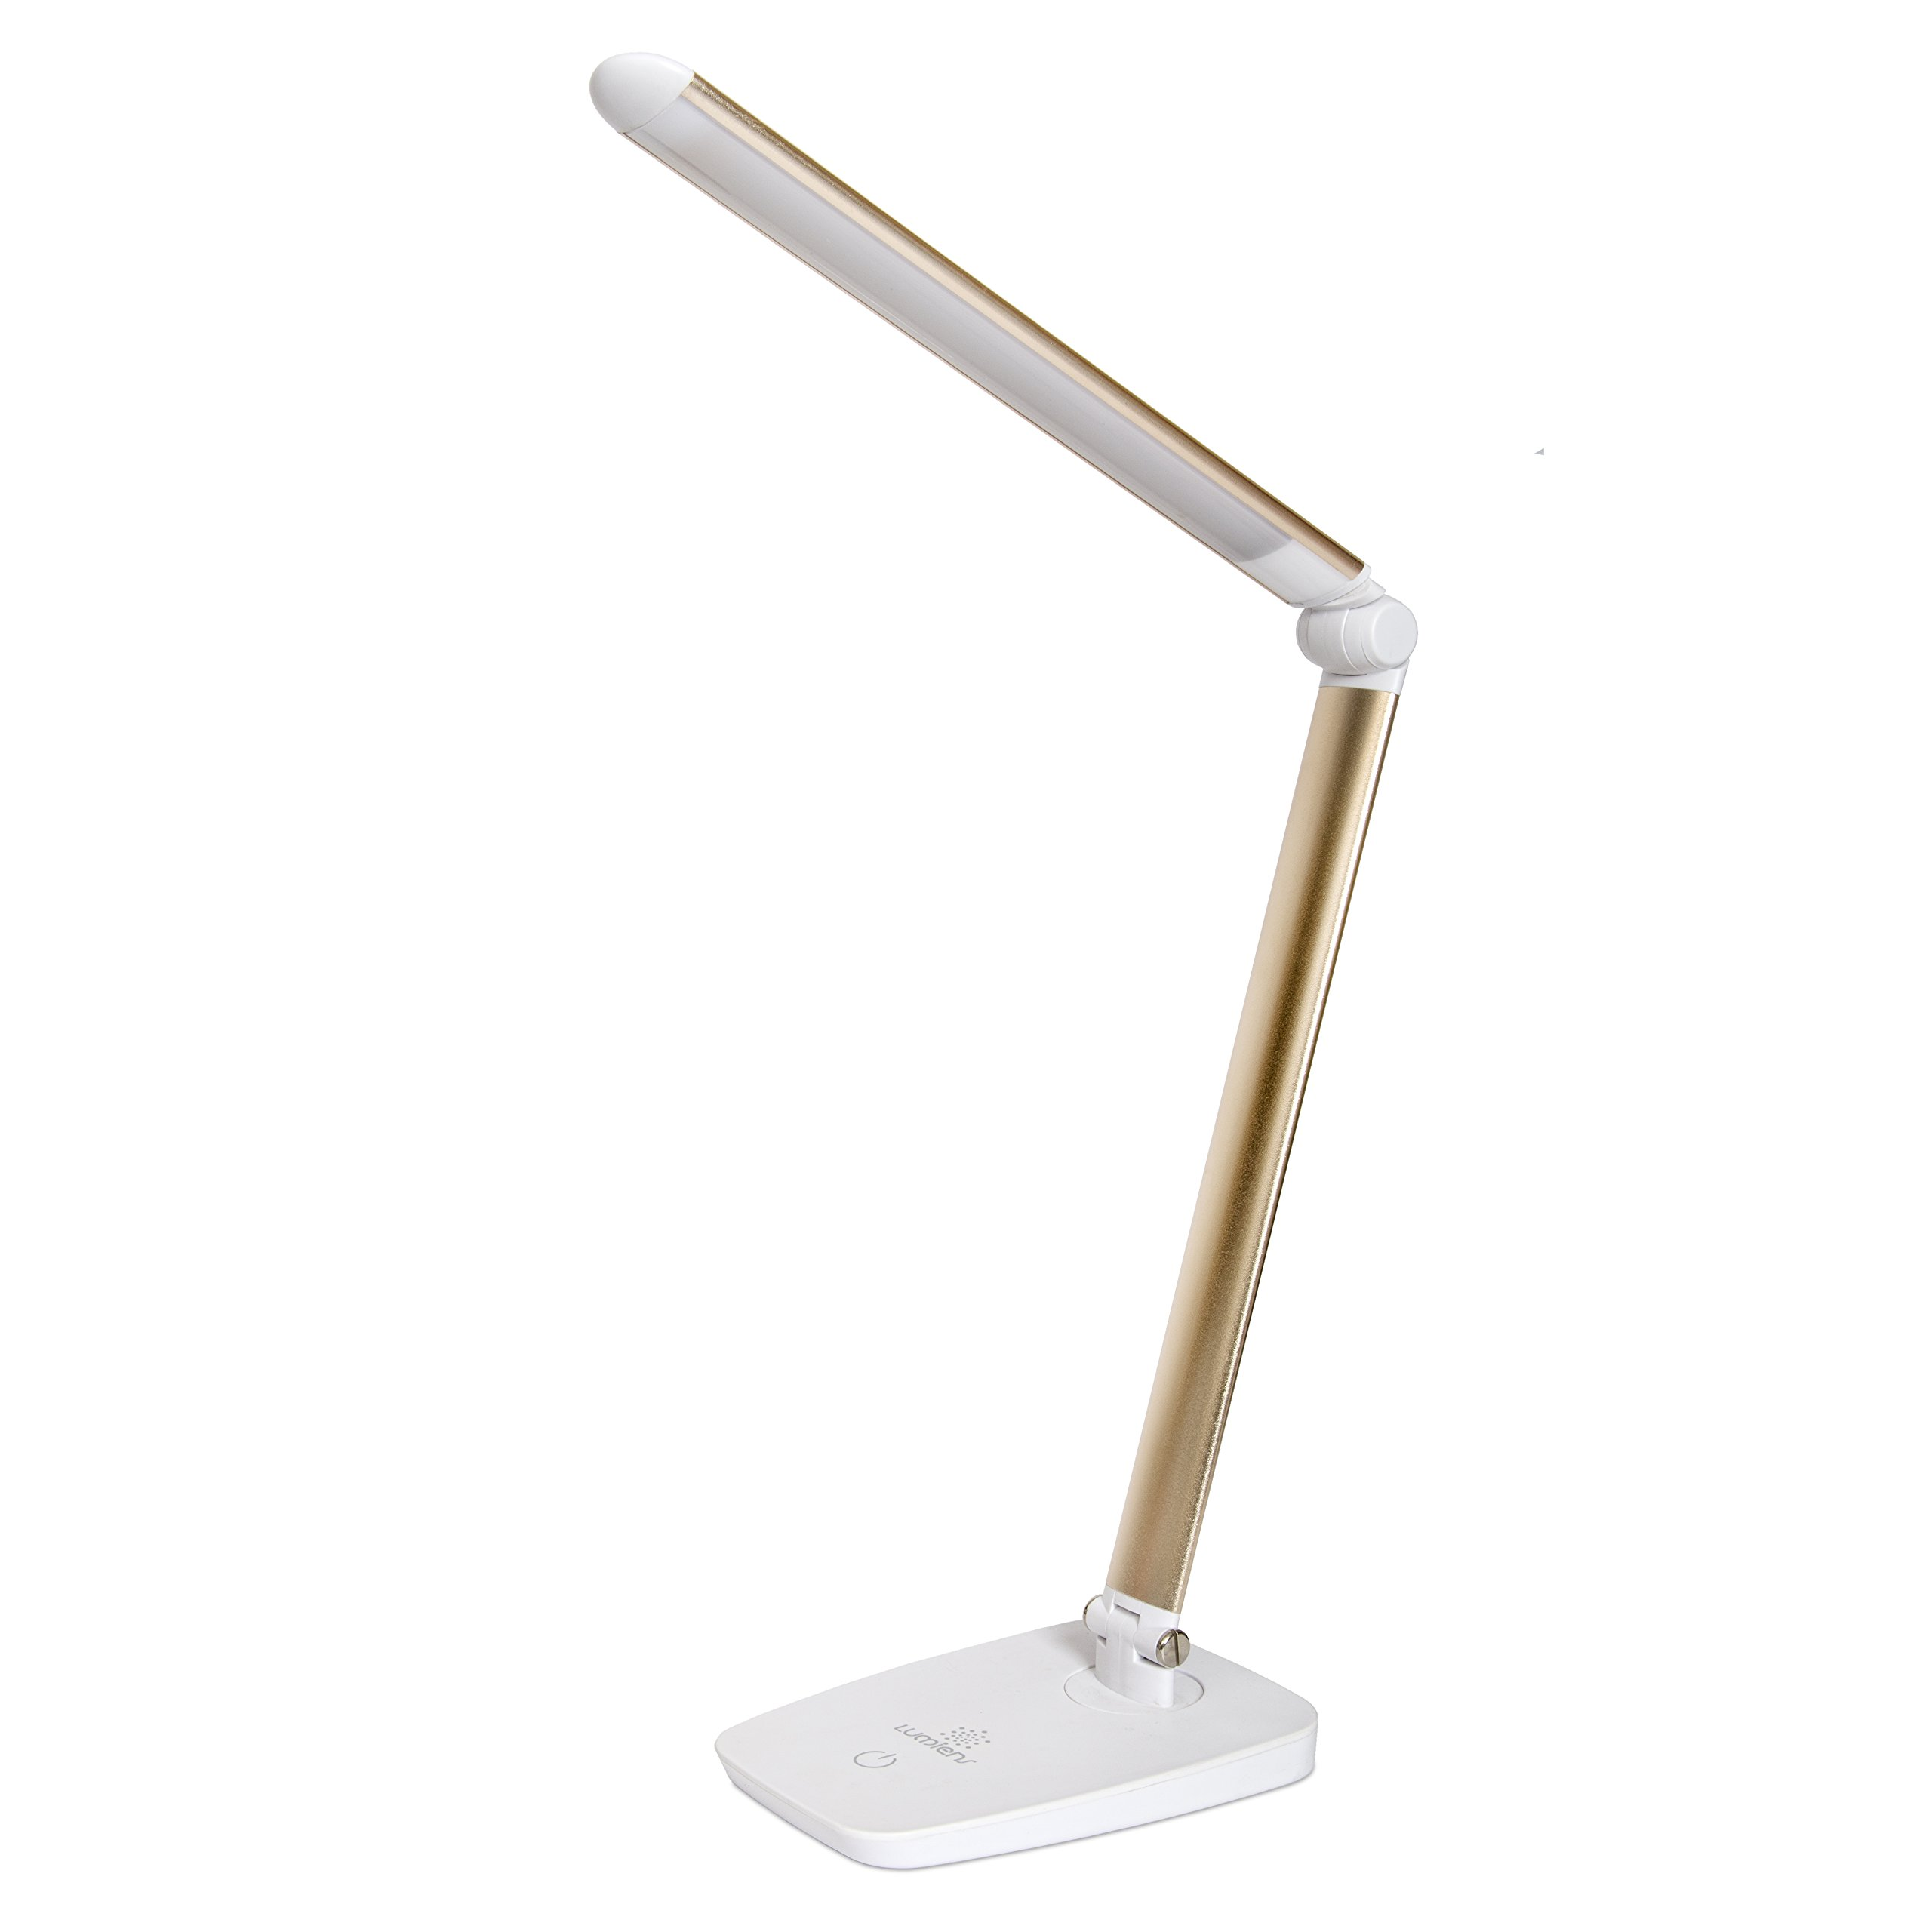 LUMIENS Greenwich - LED Desk Lamp - Adjustable Dimmable Task Table Light - Touch Switch with 3 Levels - Great for Book Reading, Work Table, Craft Table, Desk, Night Stand, Drawer, Office, Gold/White